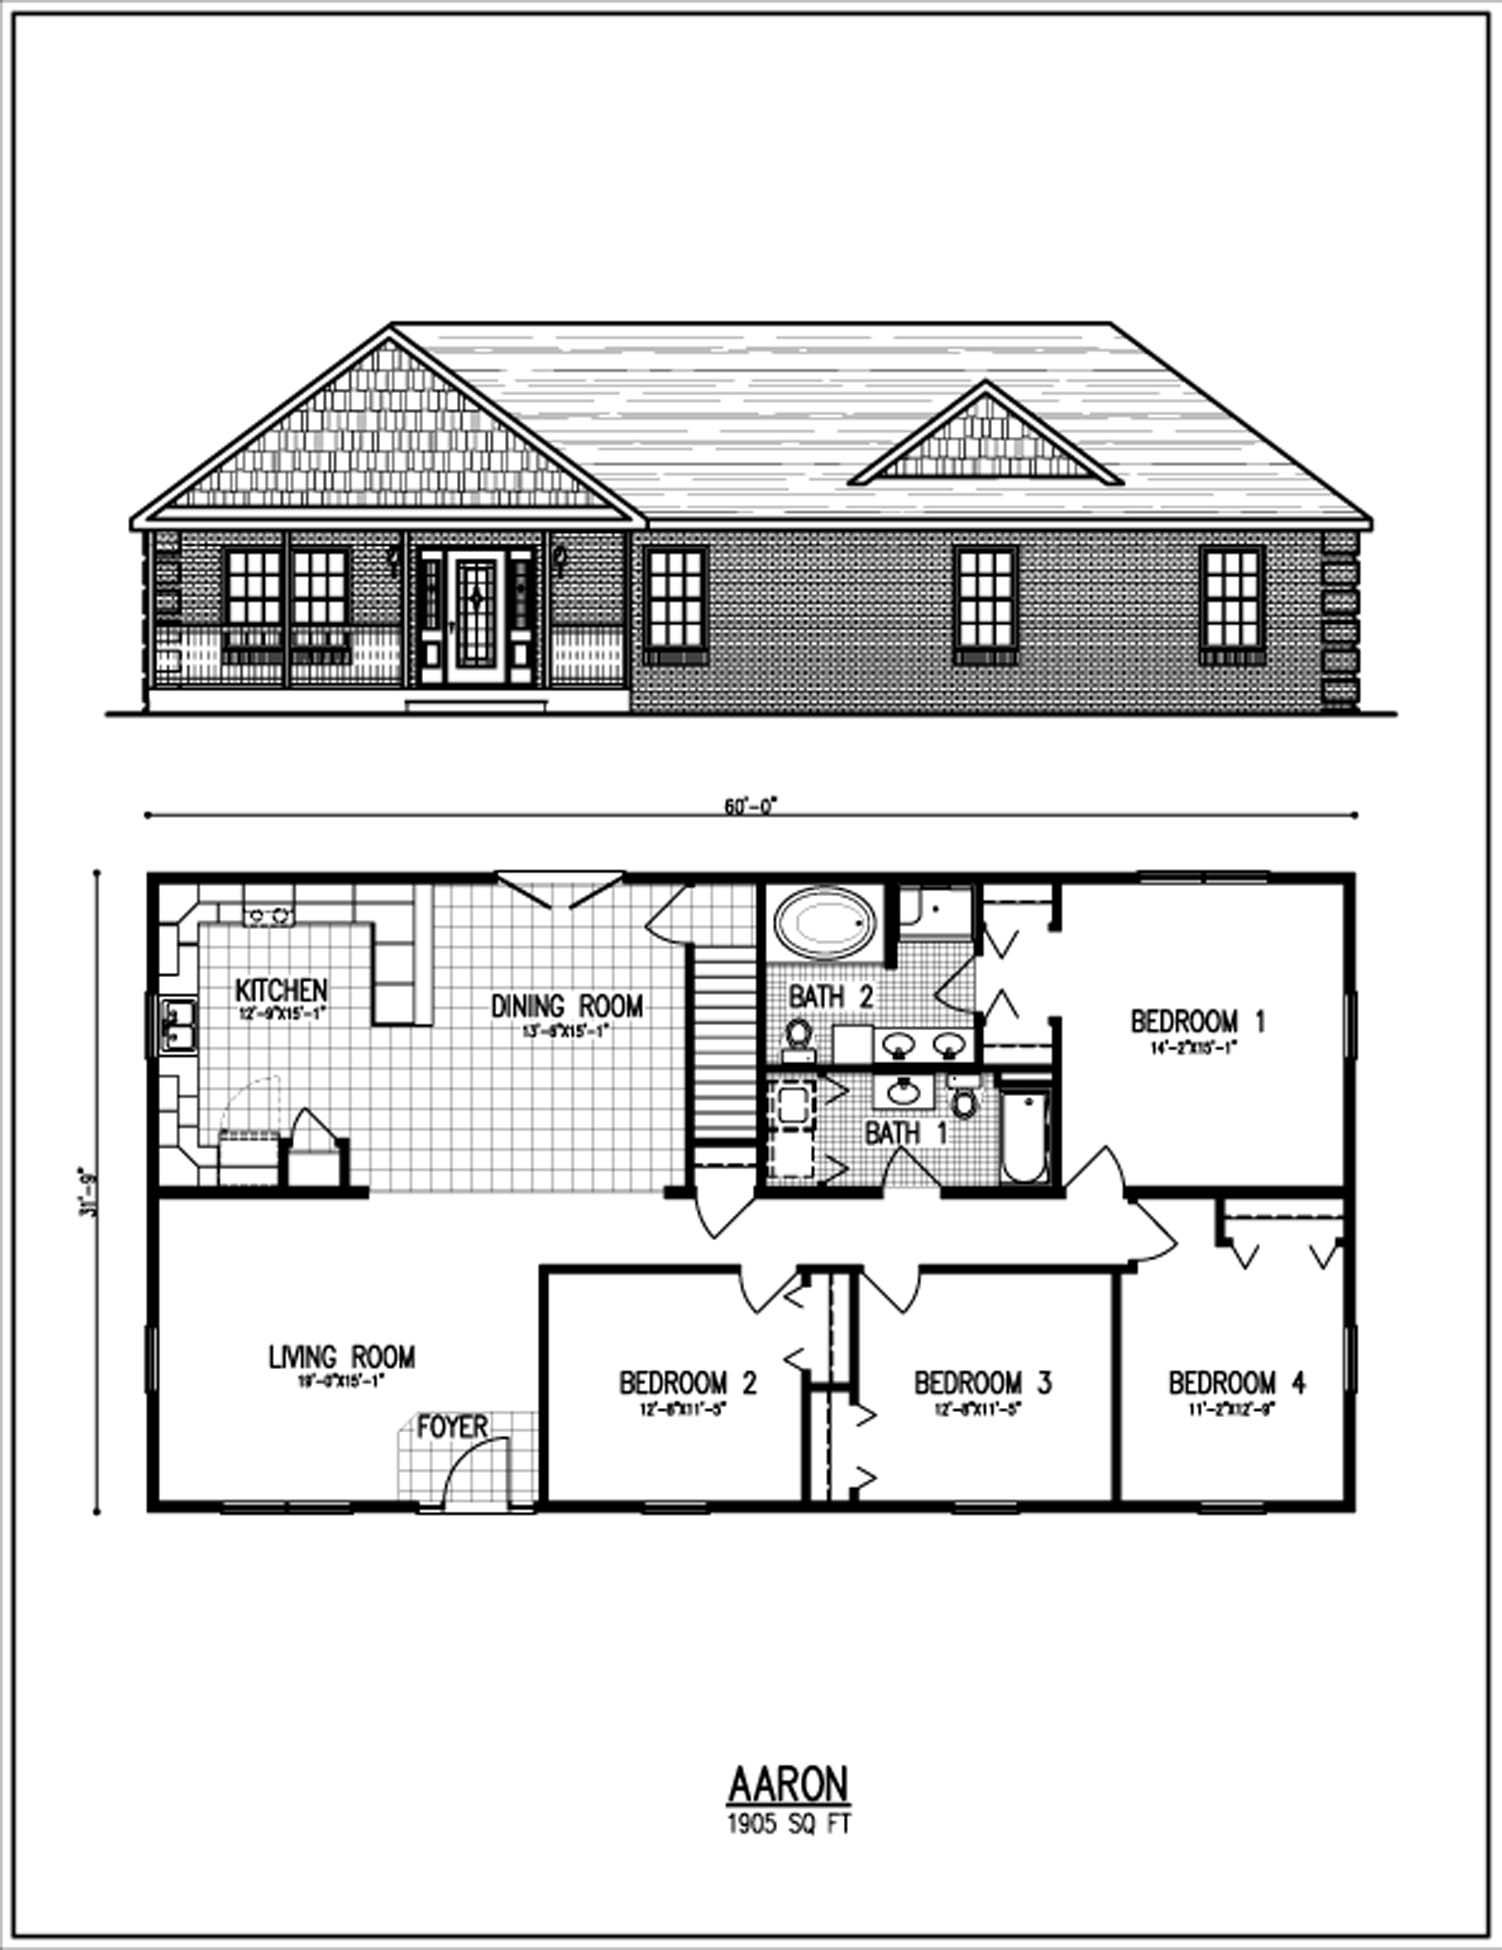 all american homes floorplan center staffordcape ranch log home floor plans with loft craftsman style log